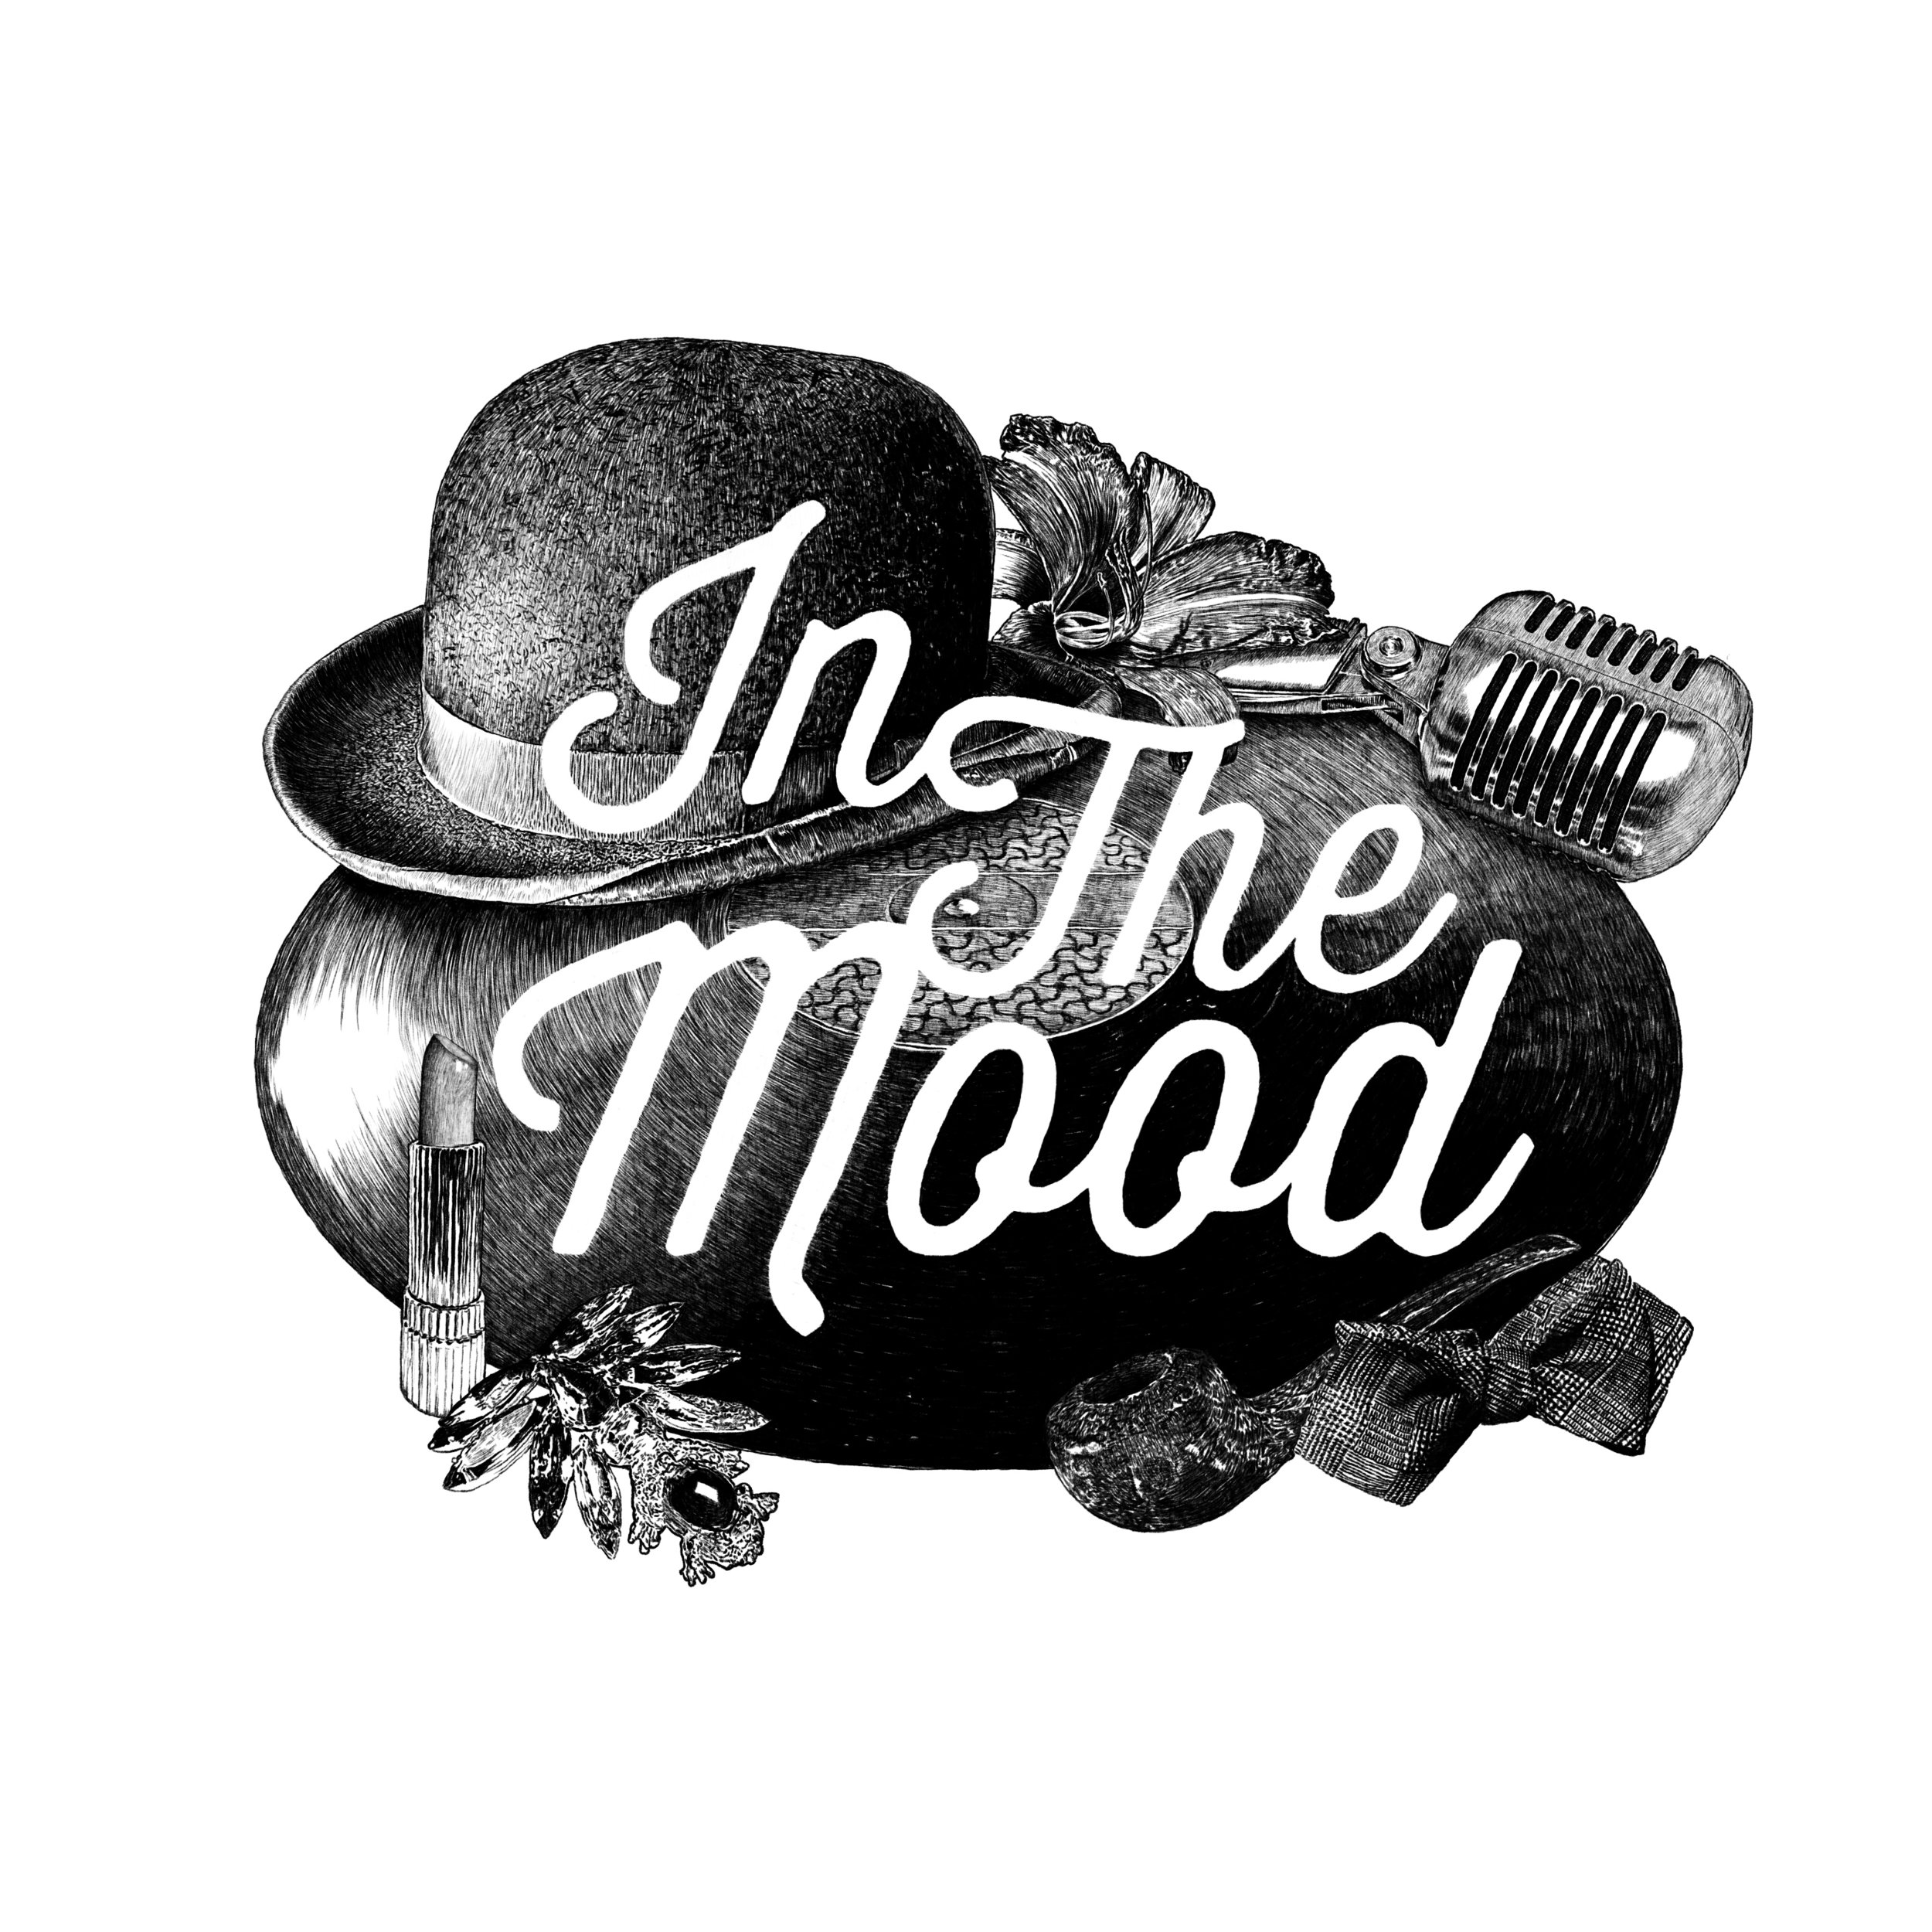 In The Mood -klubin logo, Harri Hertell, 2013